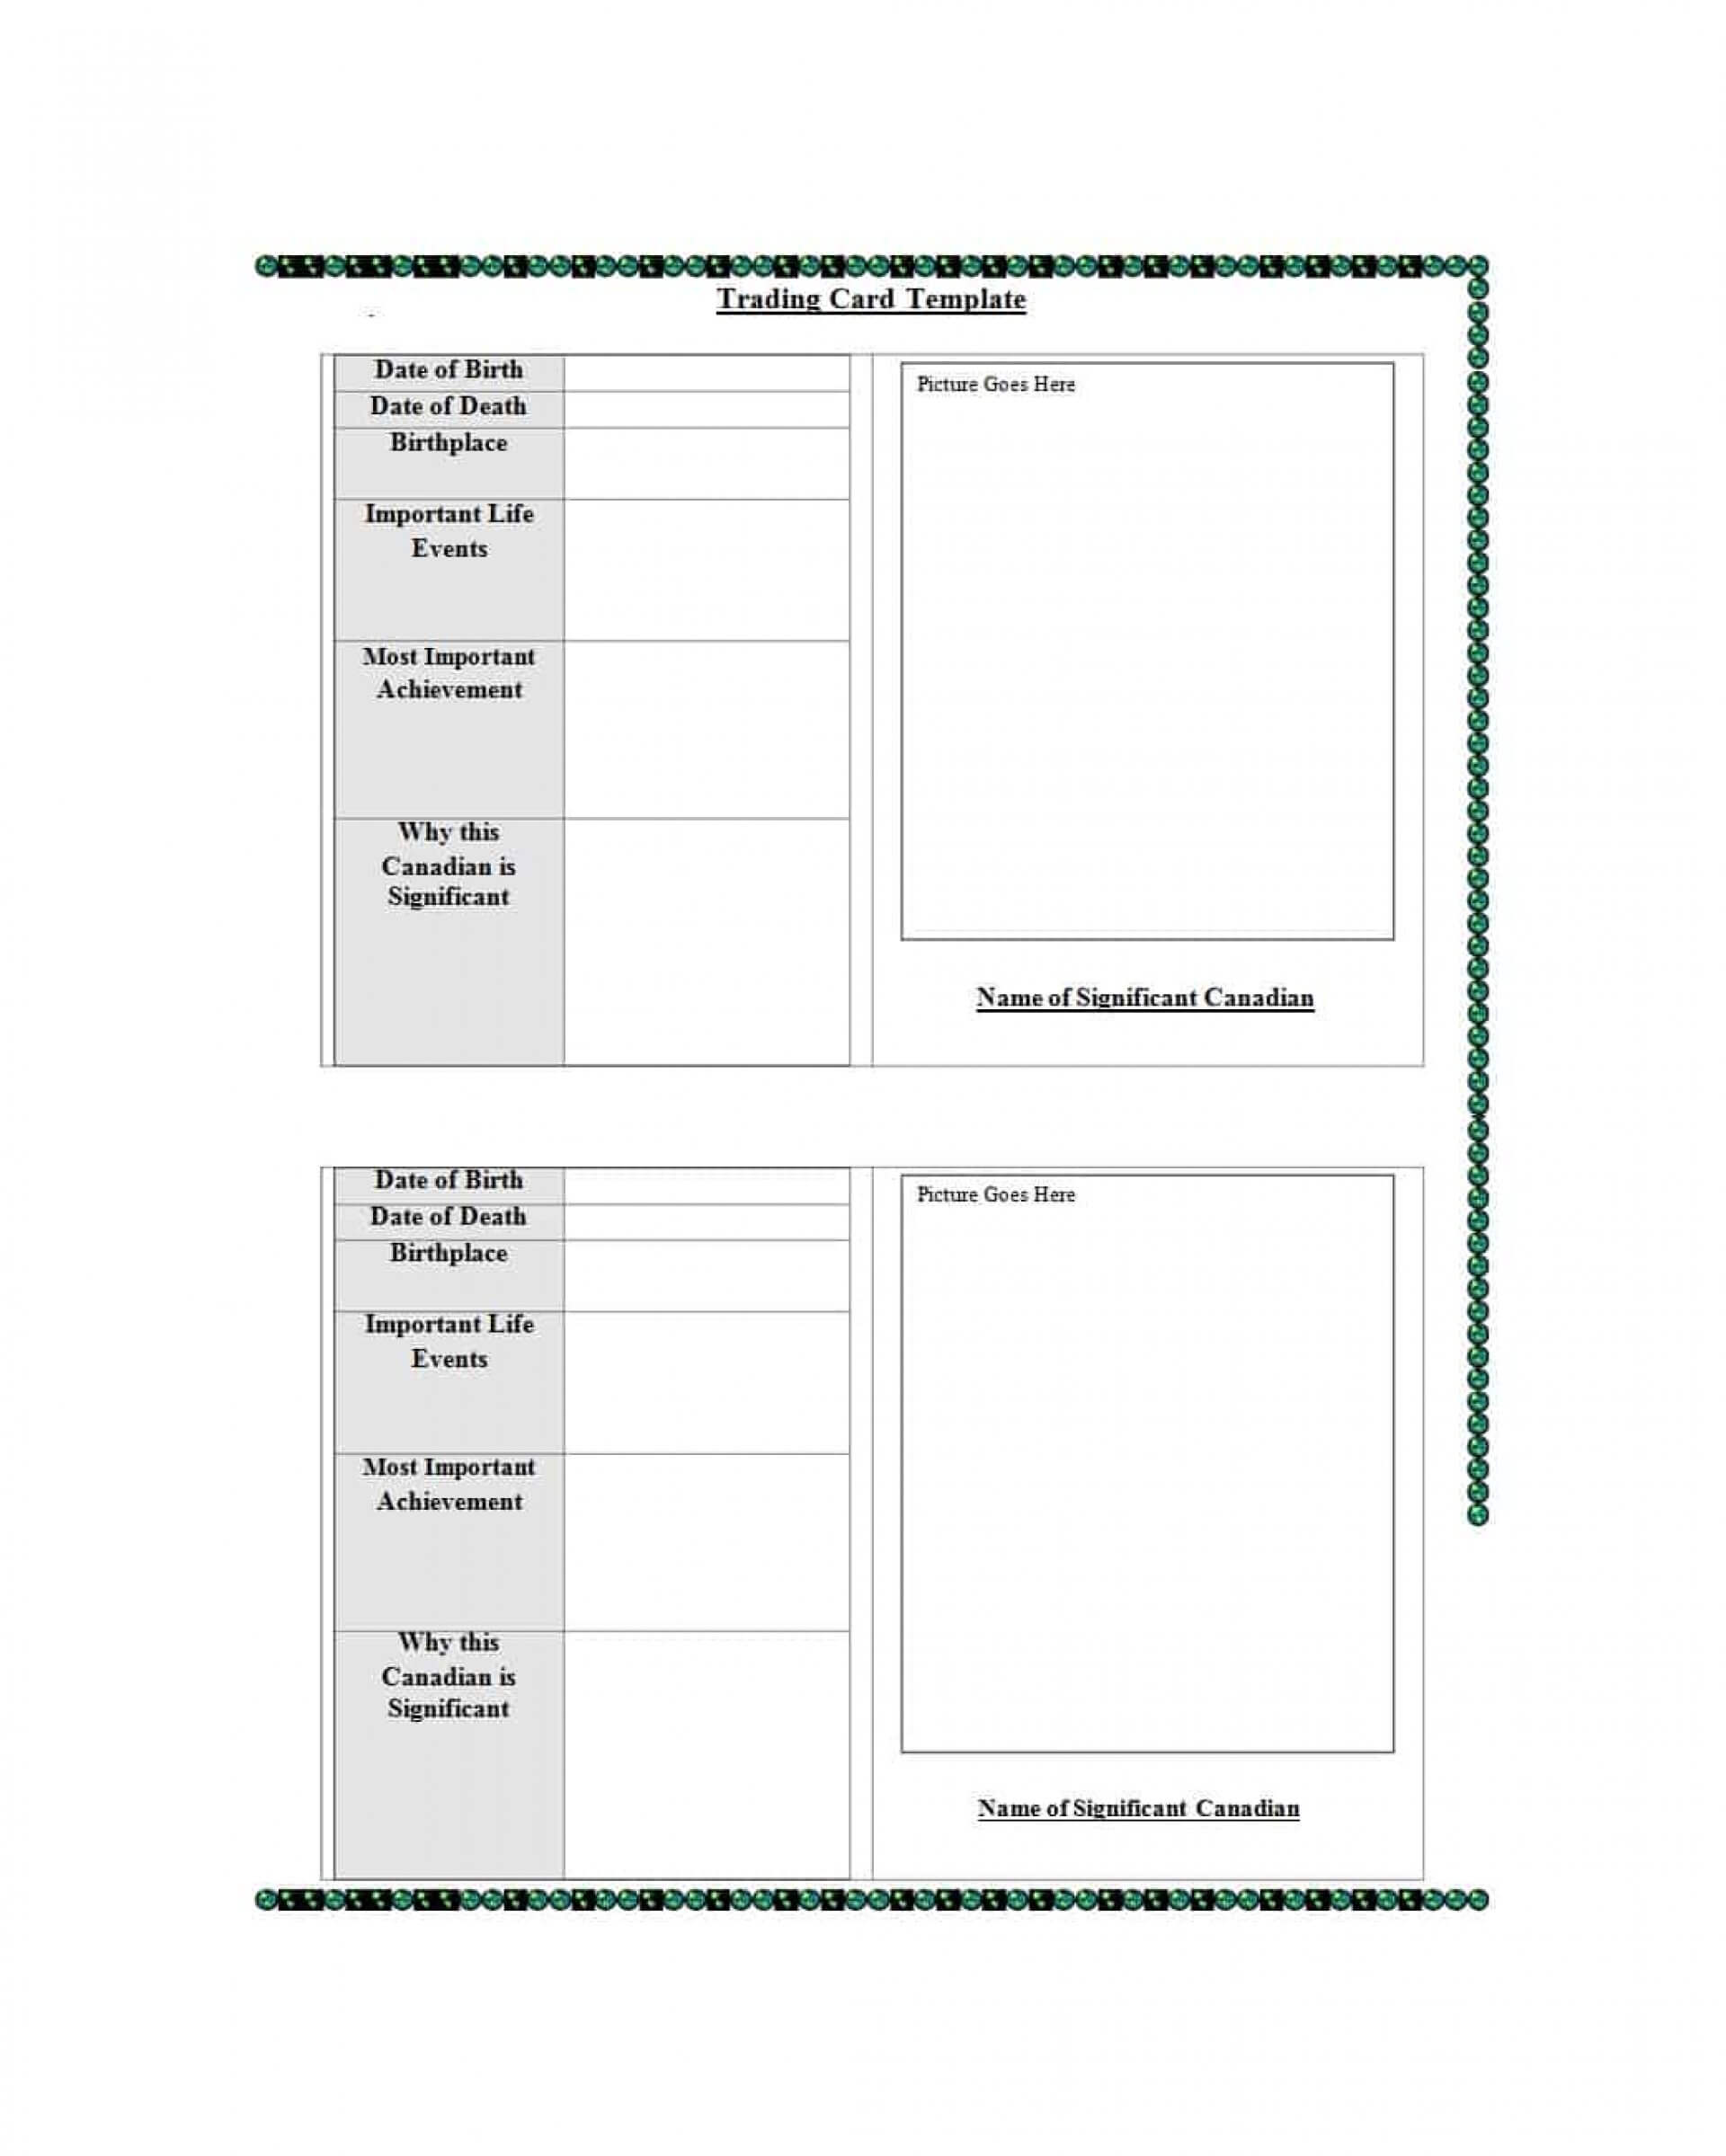 024 Baseball Trading Card Template Free Download Ideas In Free Trading Card Template Download